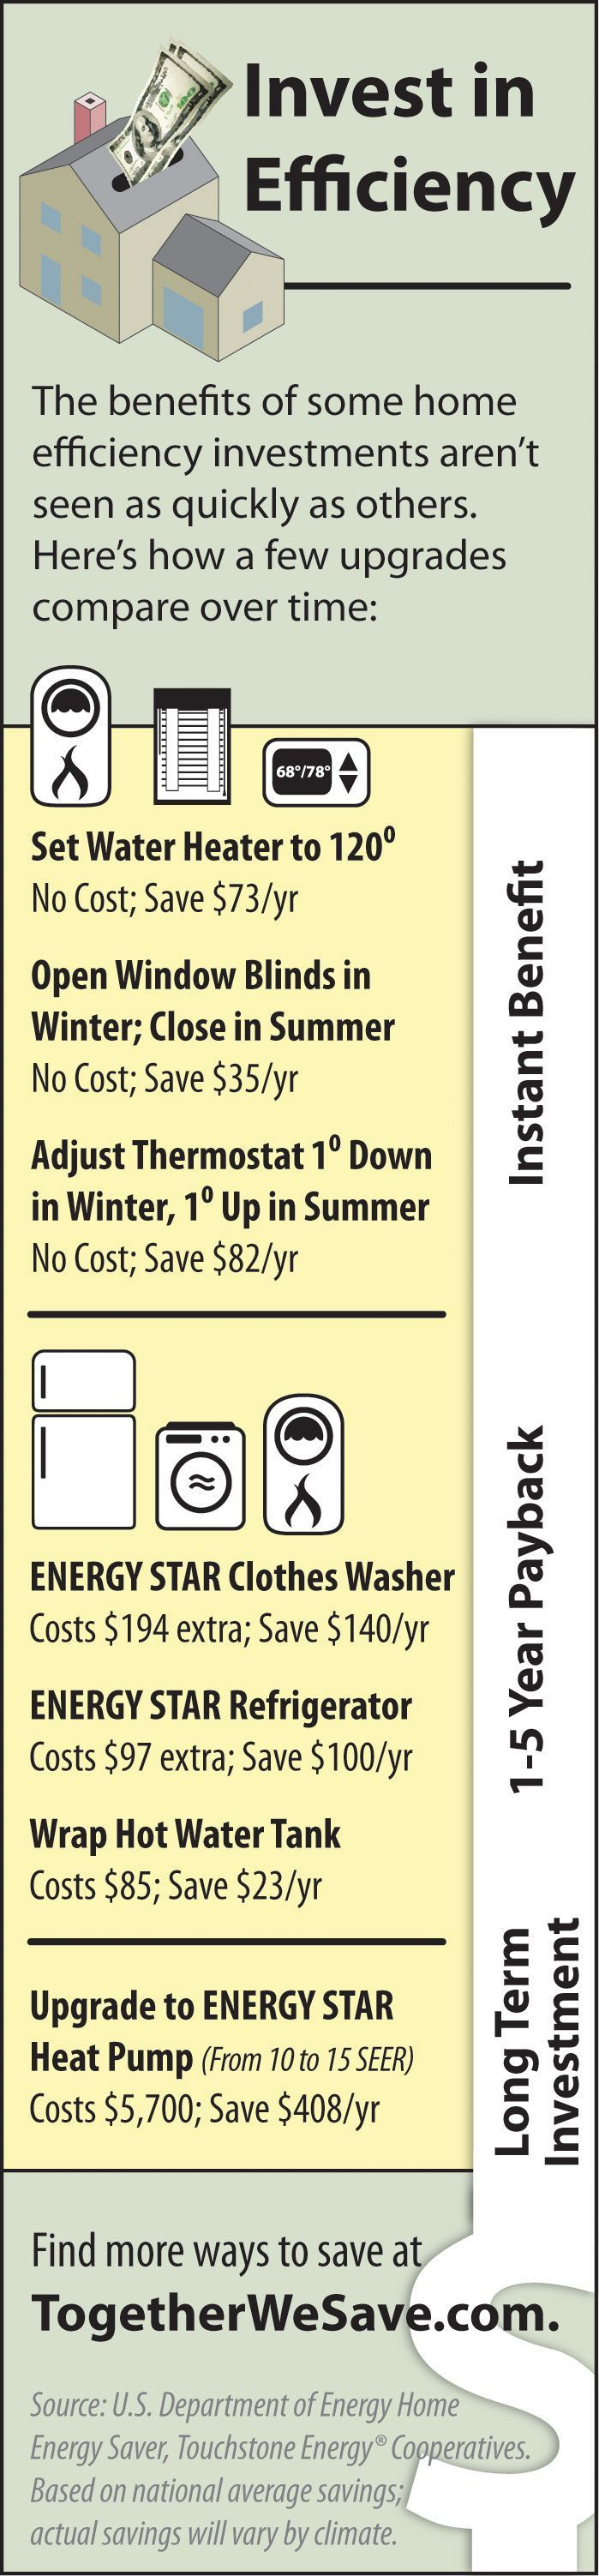 Save money, save energy. See what your next DIY project